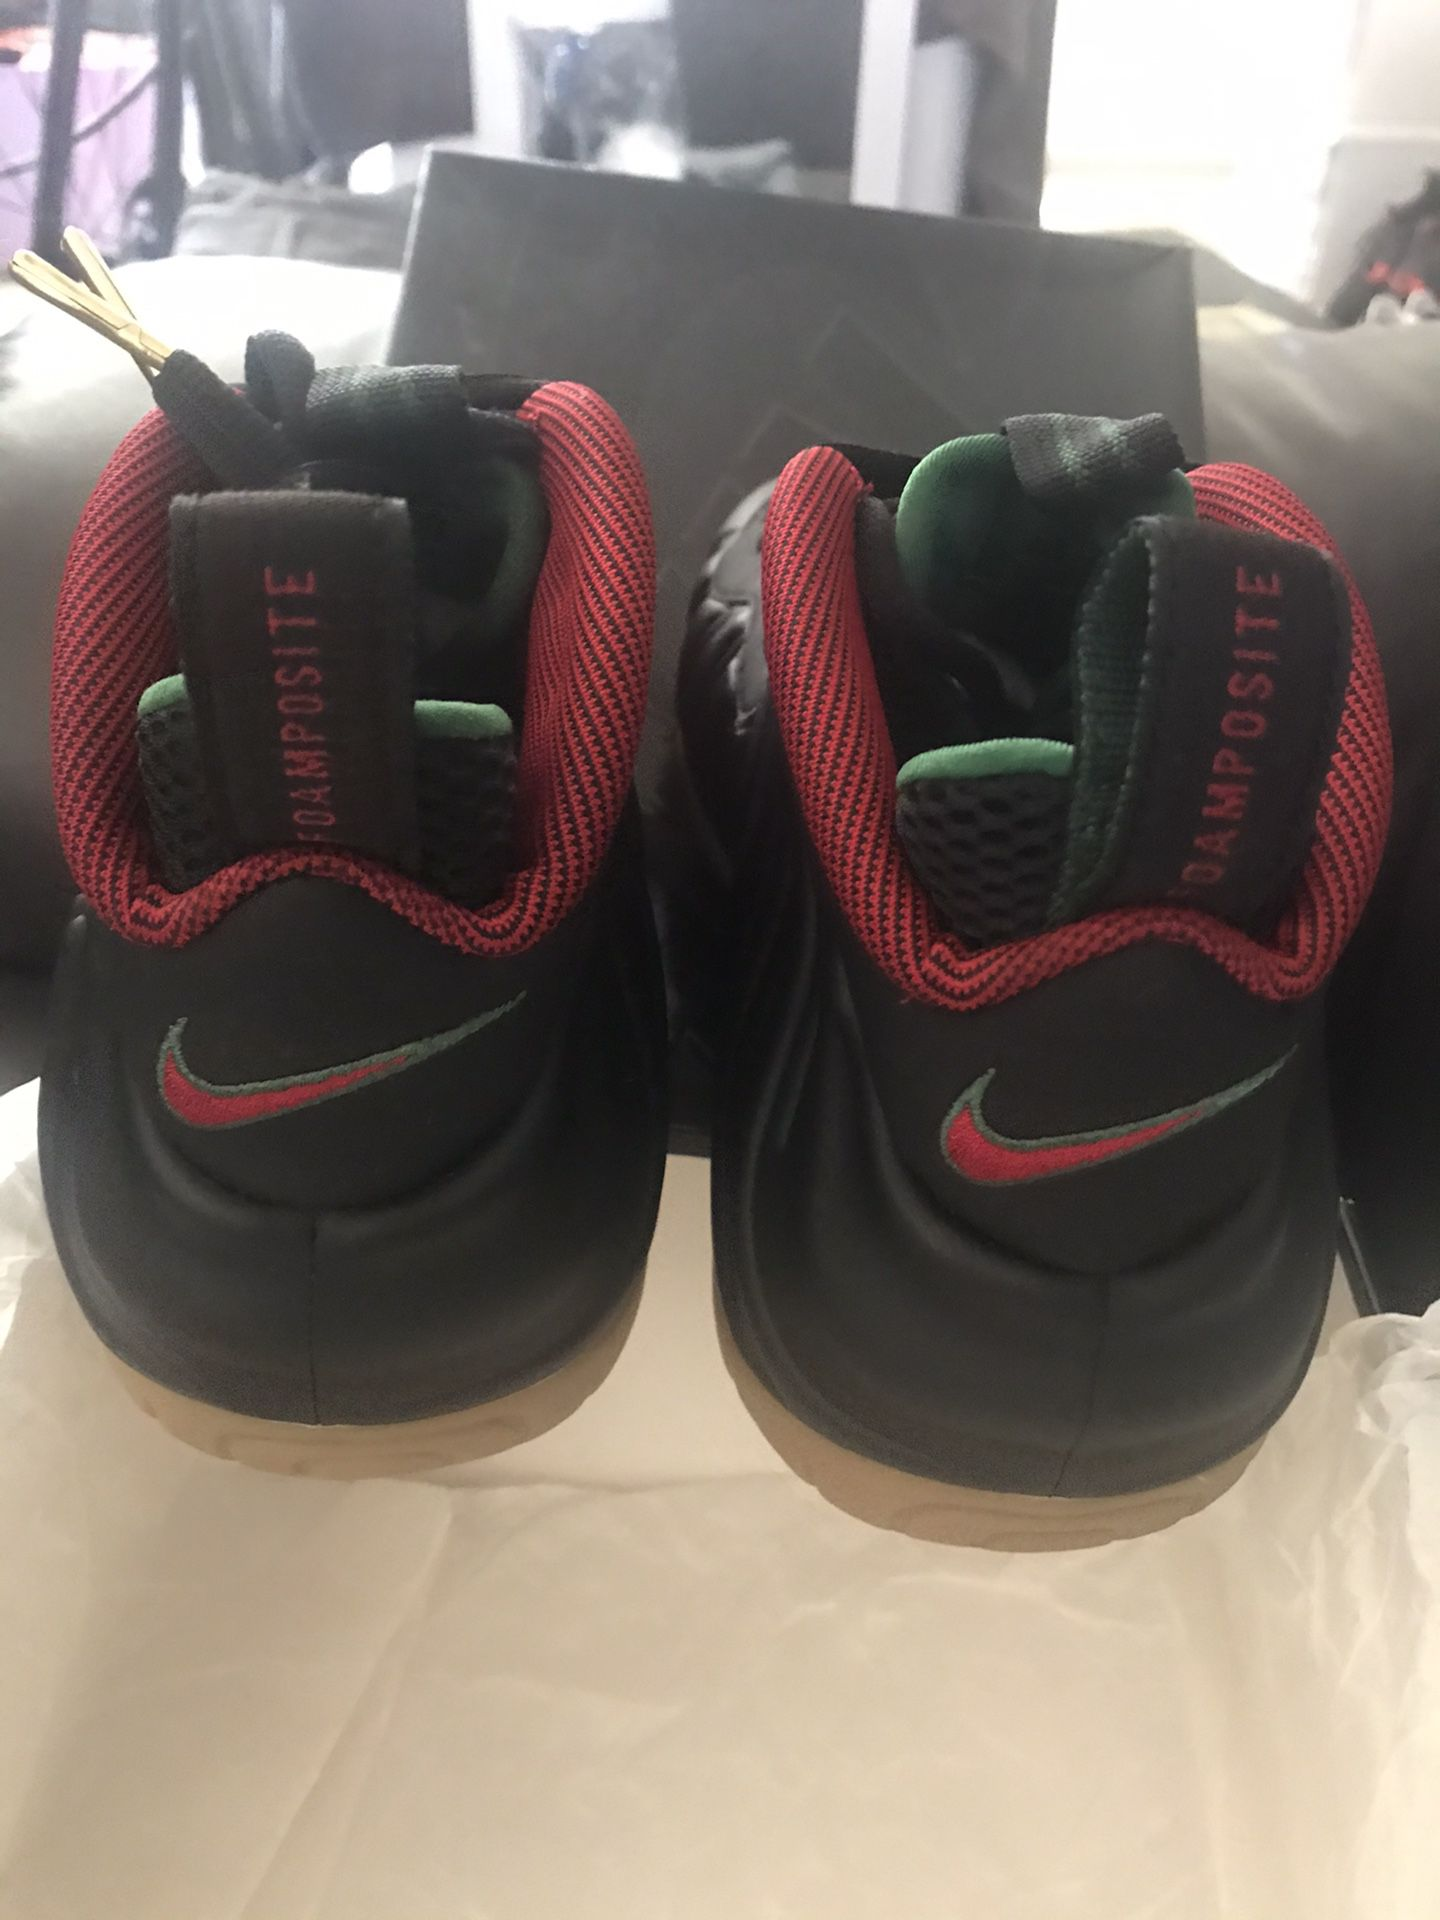 Gucci foamposite size 8.5 very nice shoes asking 350$ serious buyer only